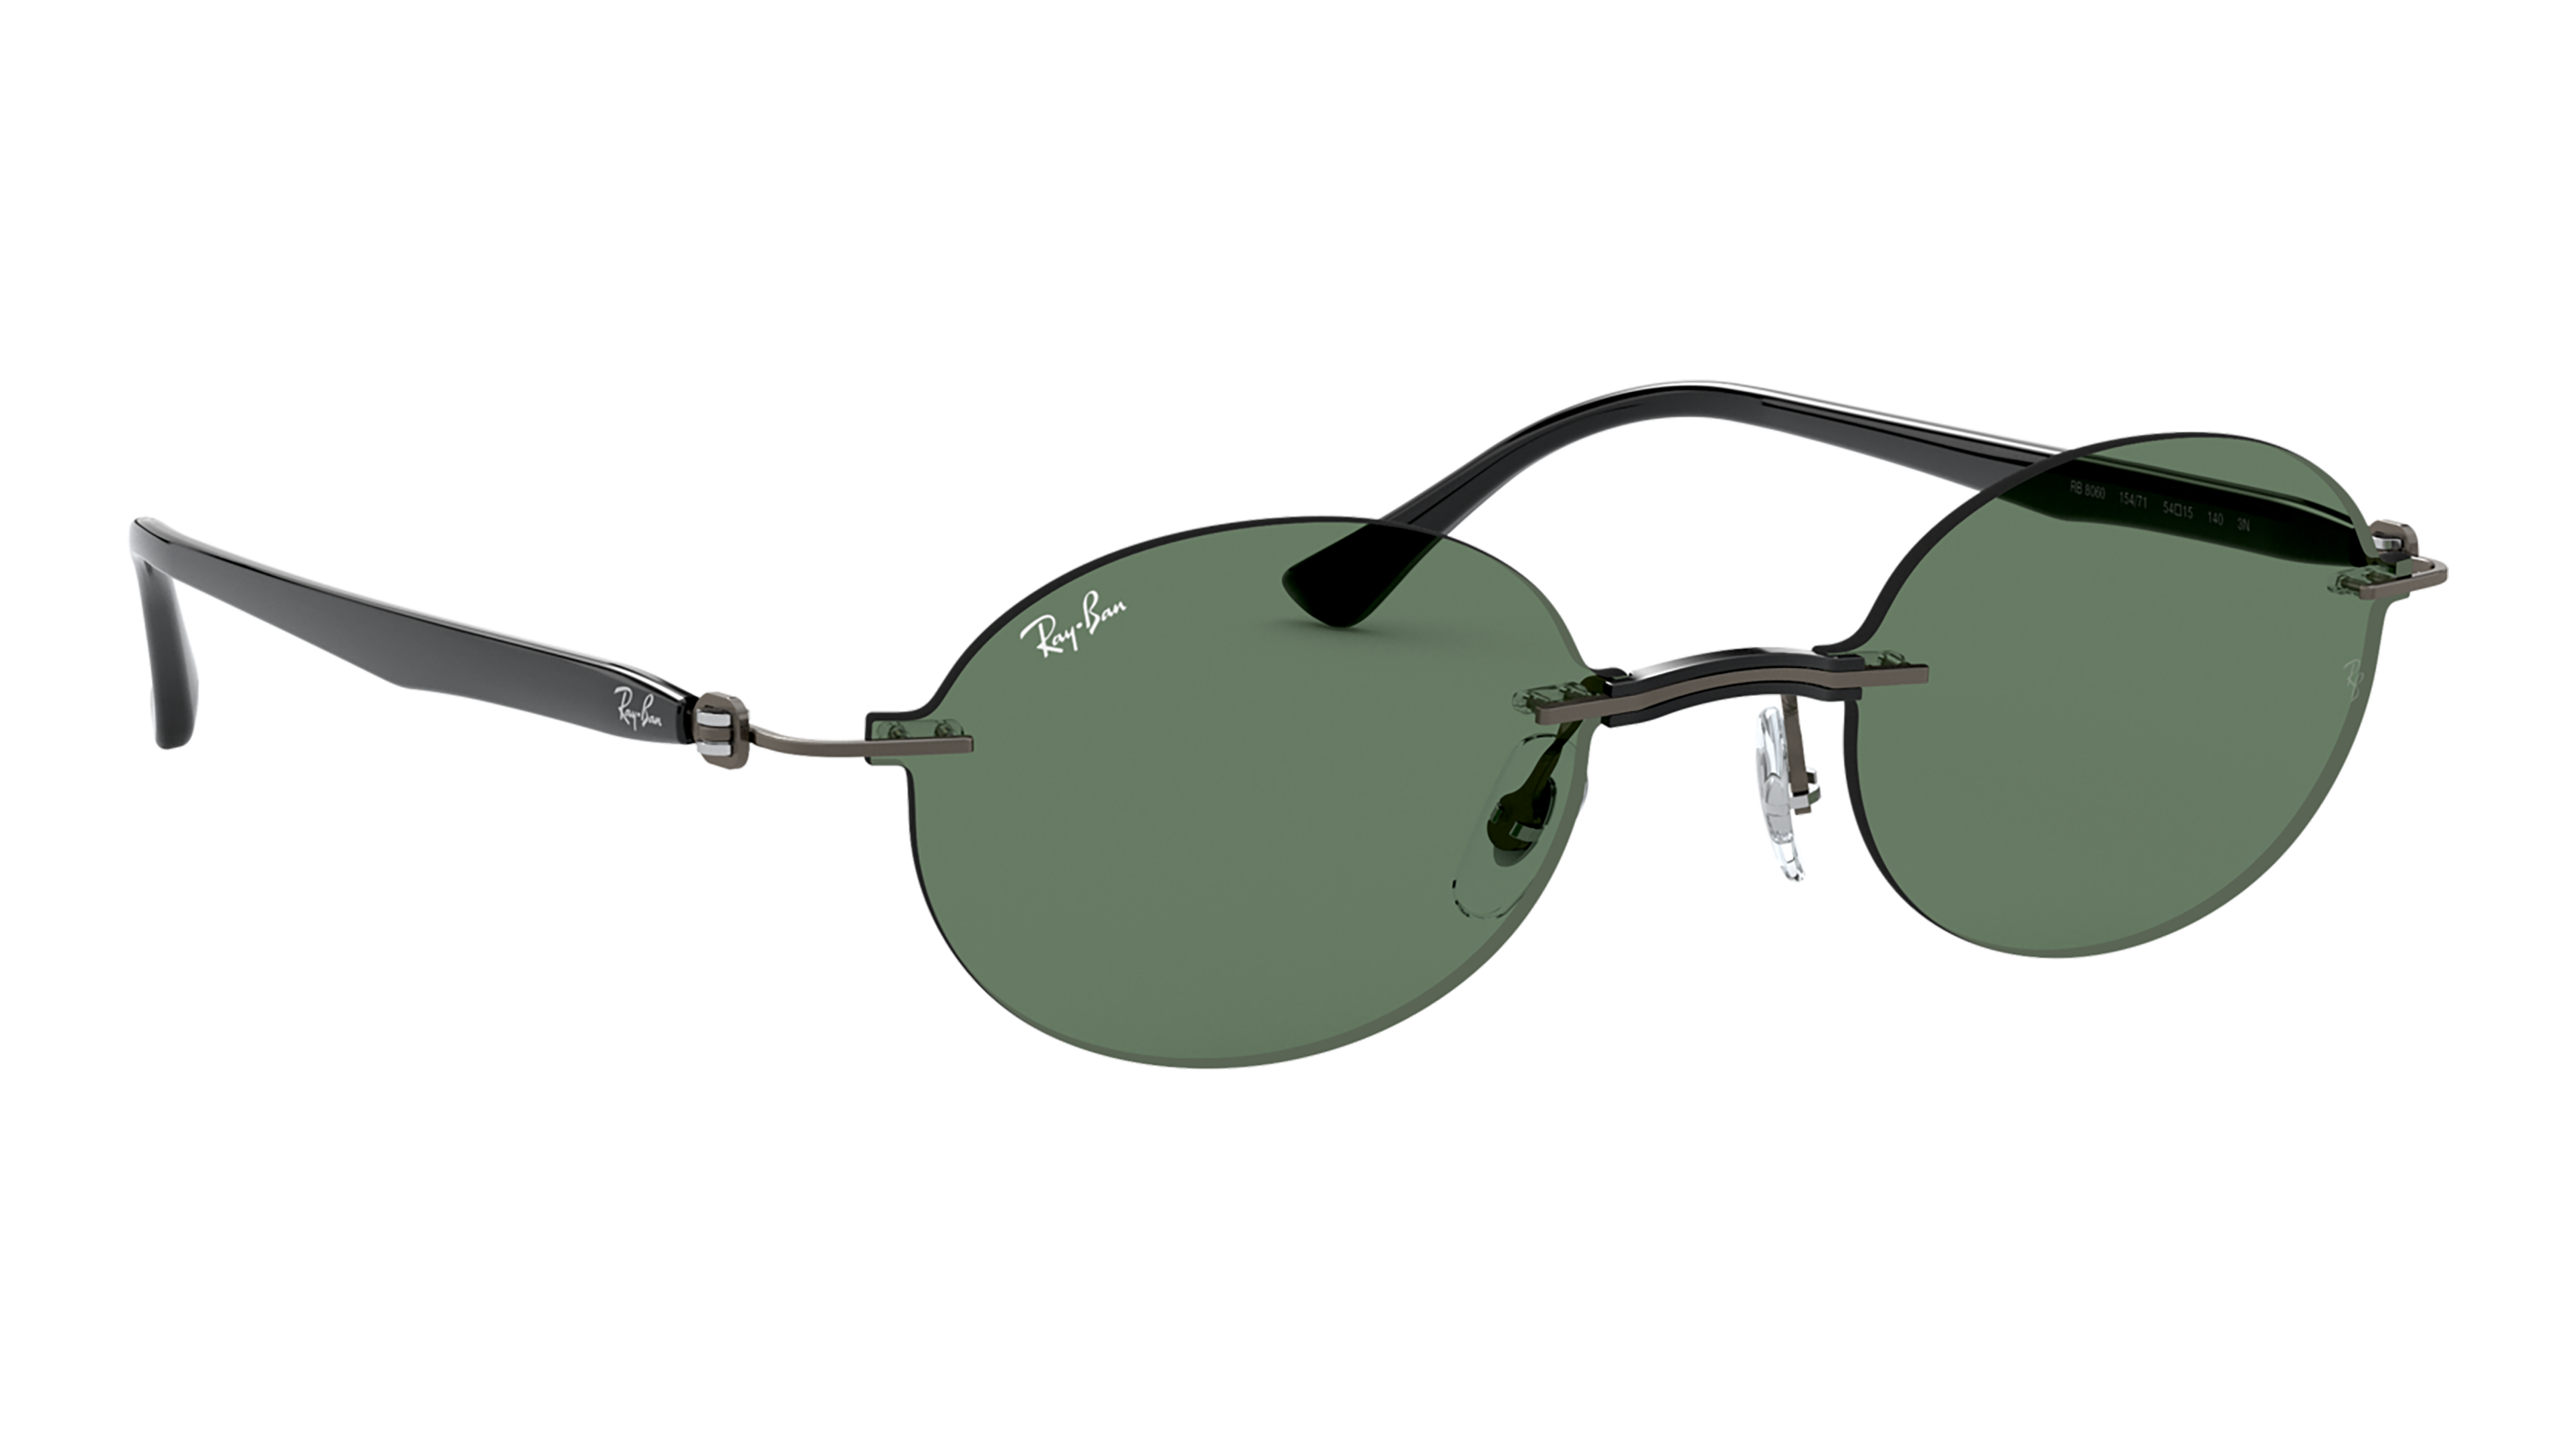 Angle_Right02 Ray-Ban Ray-Ban 0RB8060 154/71 54/15 Transparant, Zilver/Groen